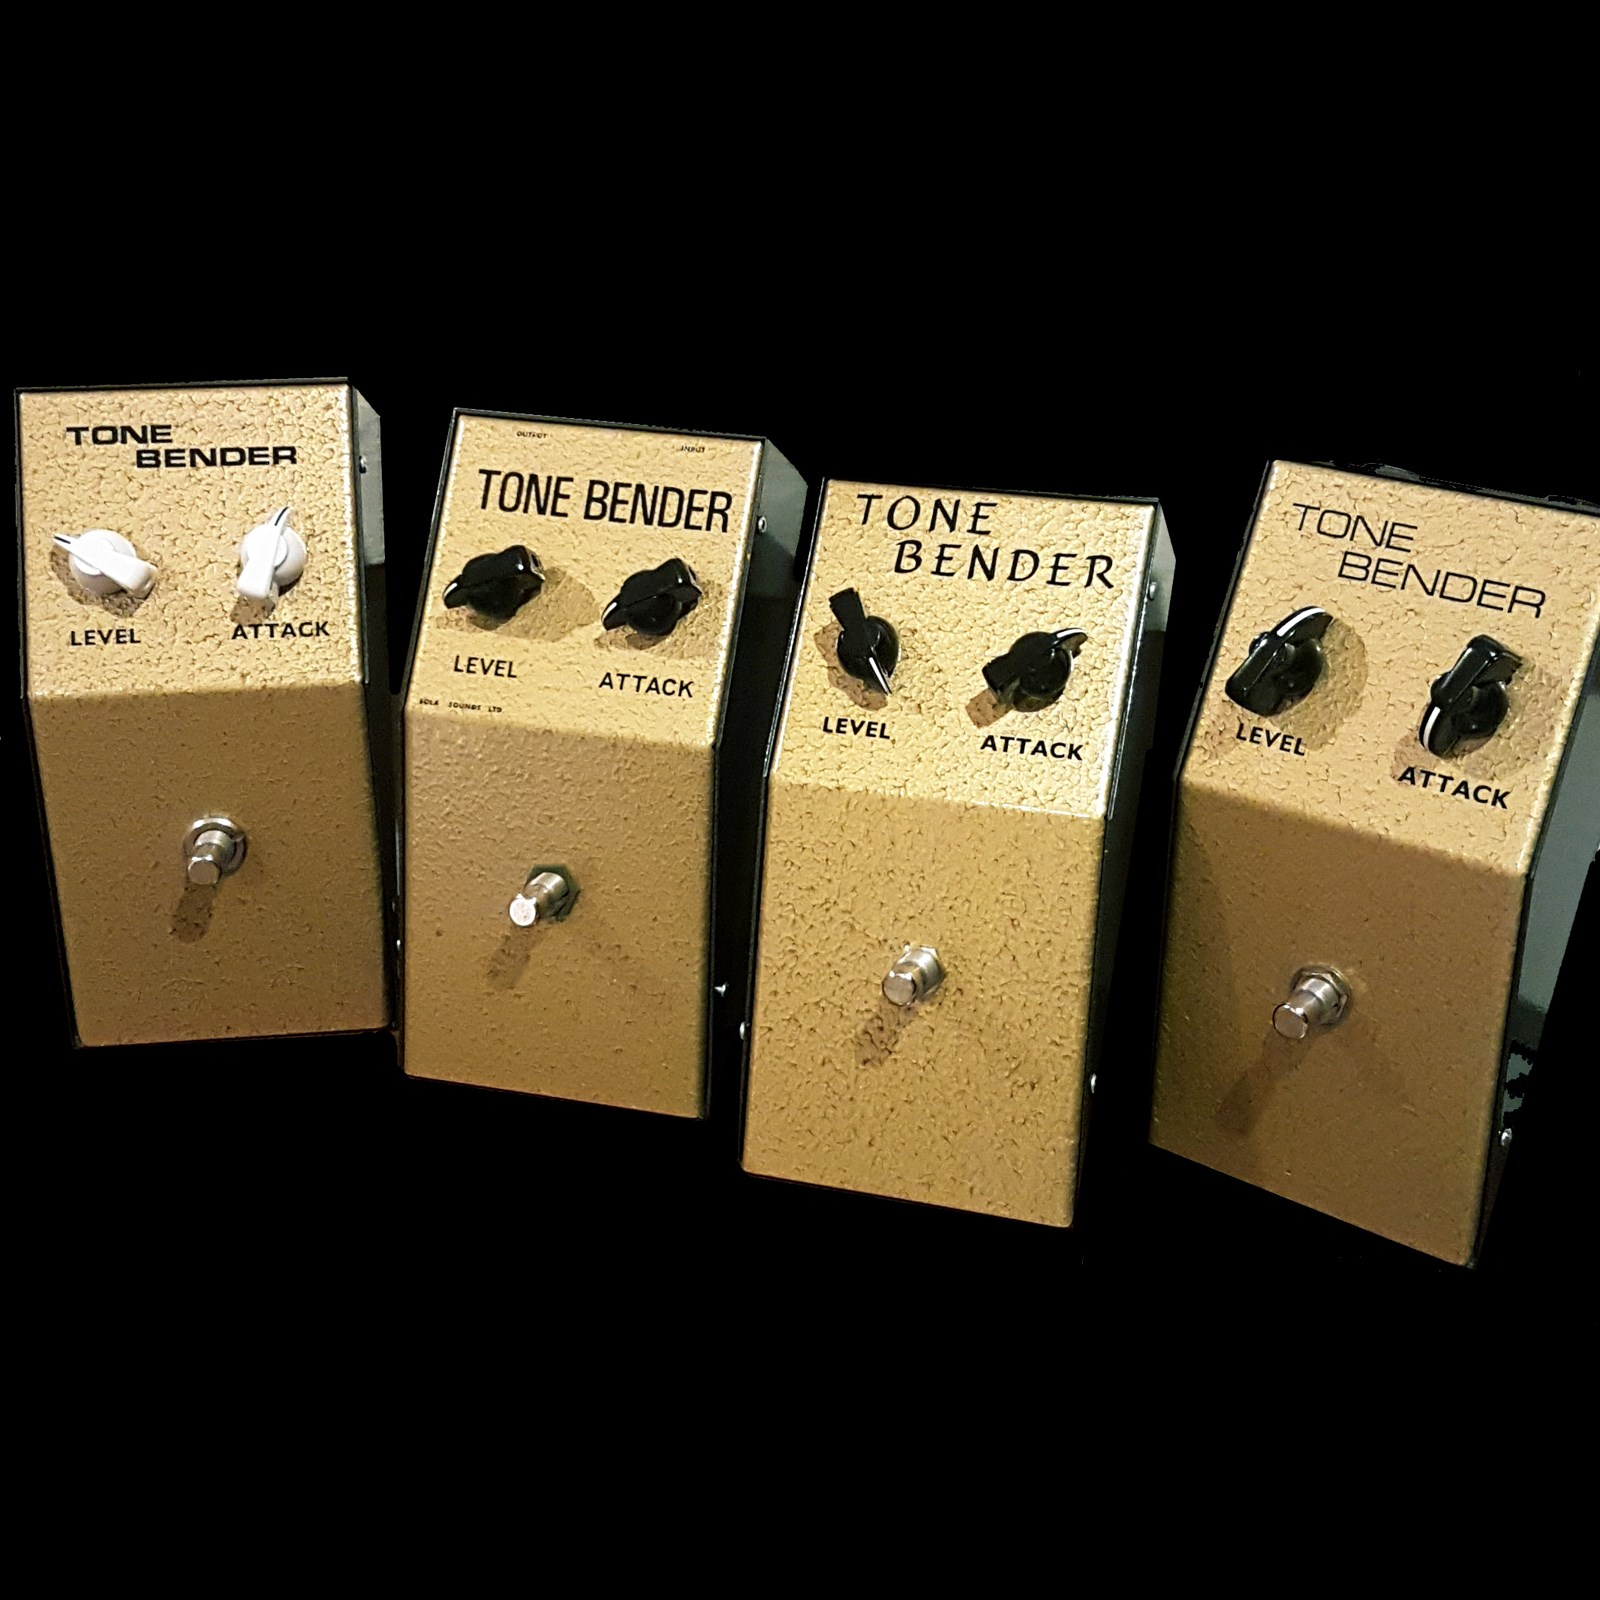 THE SET OF FOUR MK I TONE BENDERS